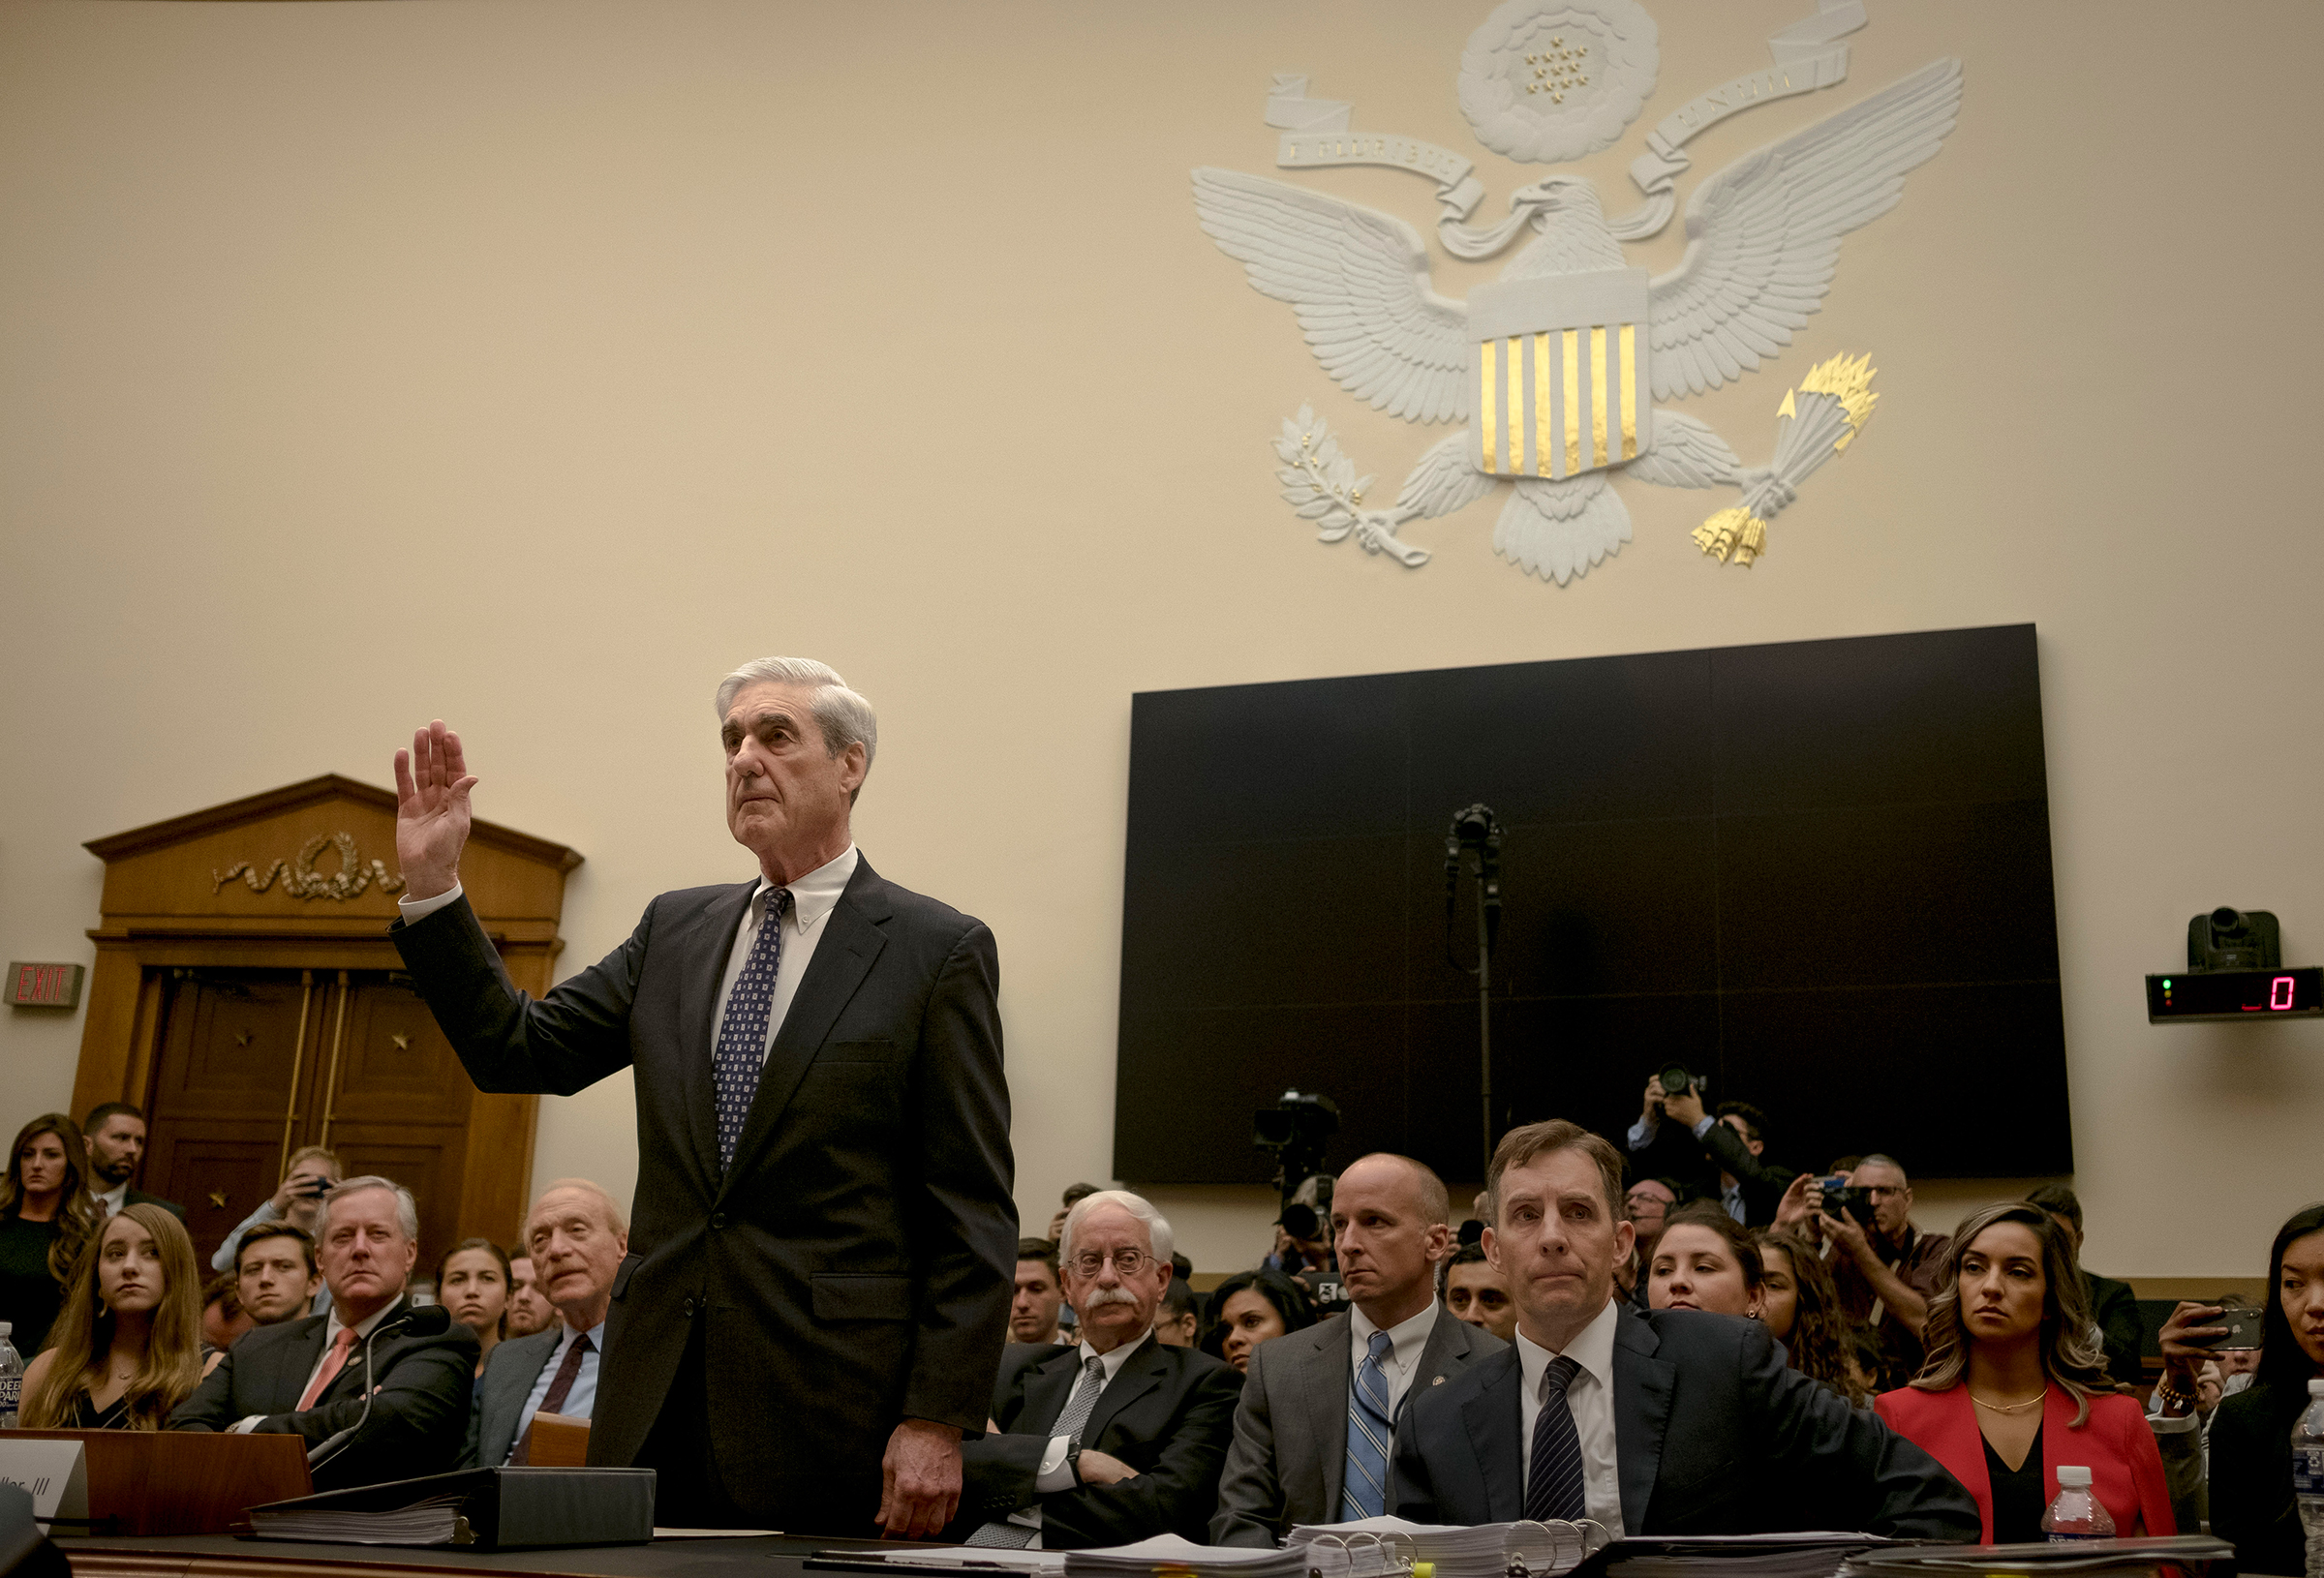 Former Special Counsel Robert Mueller is sworn in before the House Judiciary Committee in Washington, D.C., on July 24, 2019.